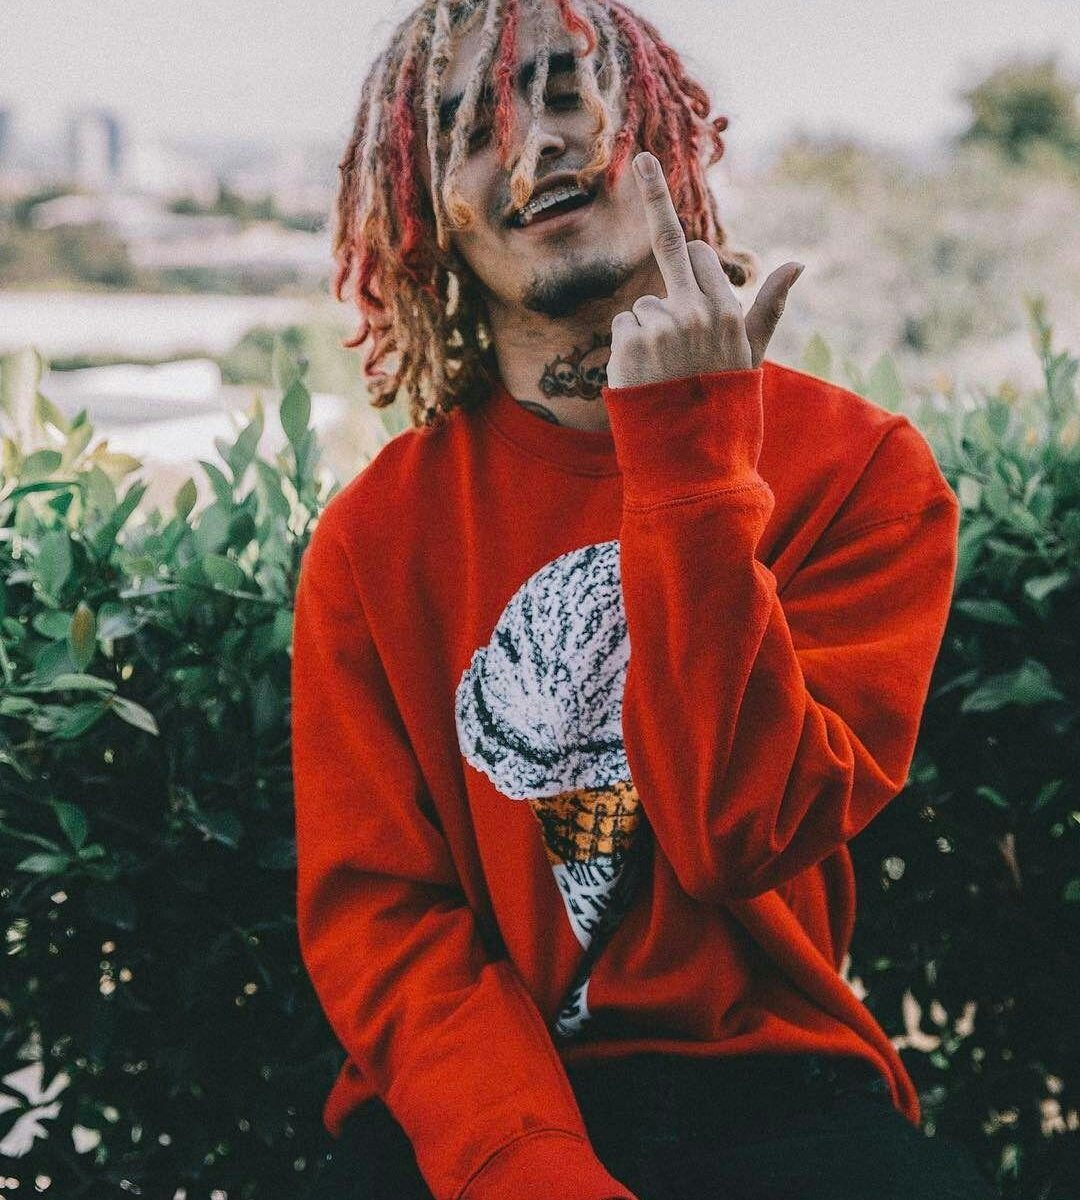 Tons of awesome aesthetic laptop white wallpapers to download for free. Lil Pump Wallpapers – HD Wallpapers , HD Backgrounds